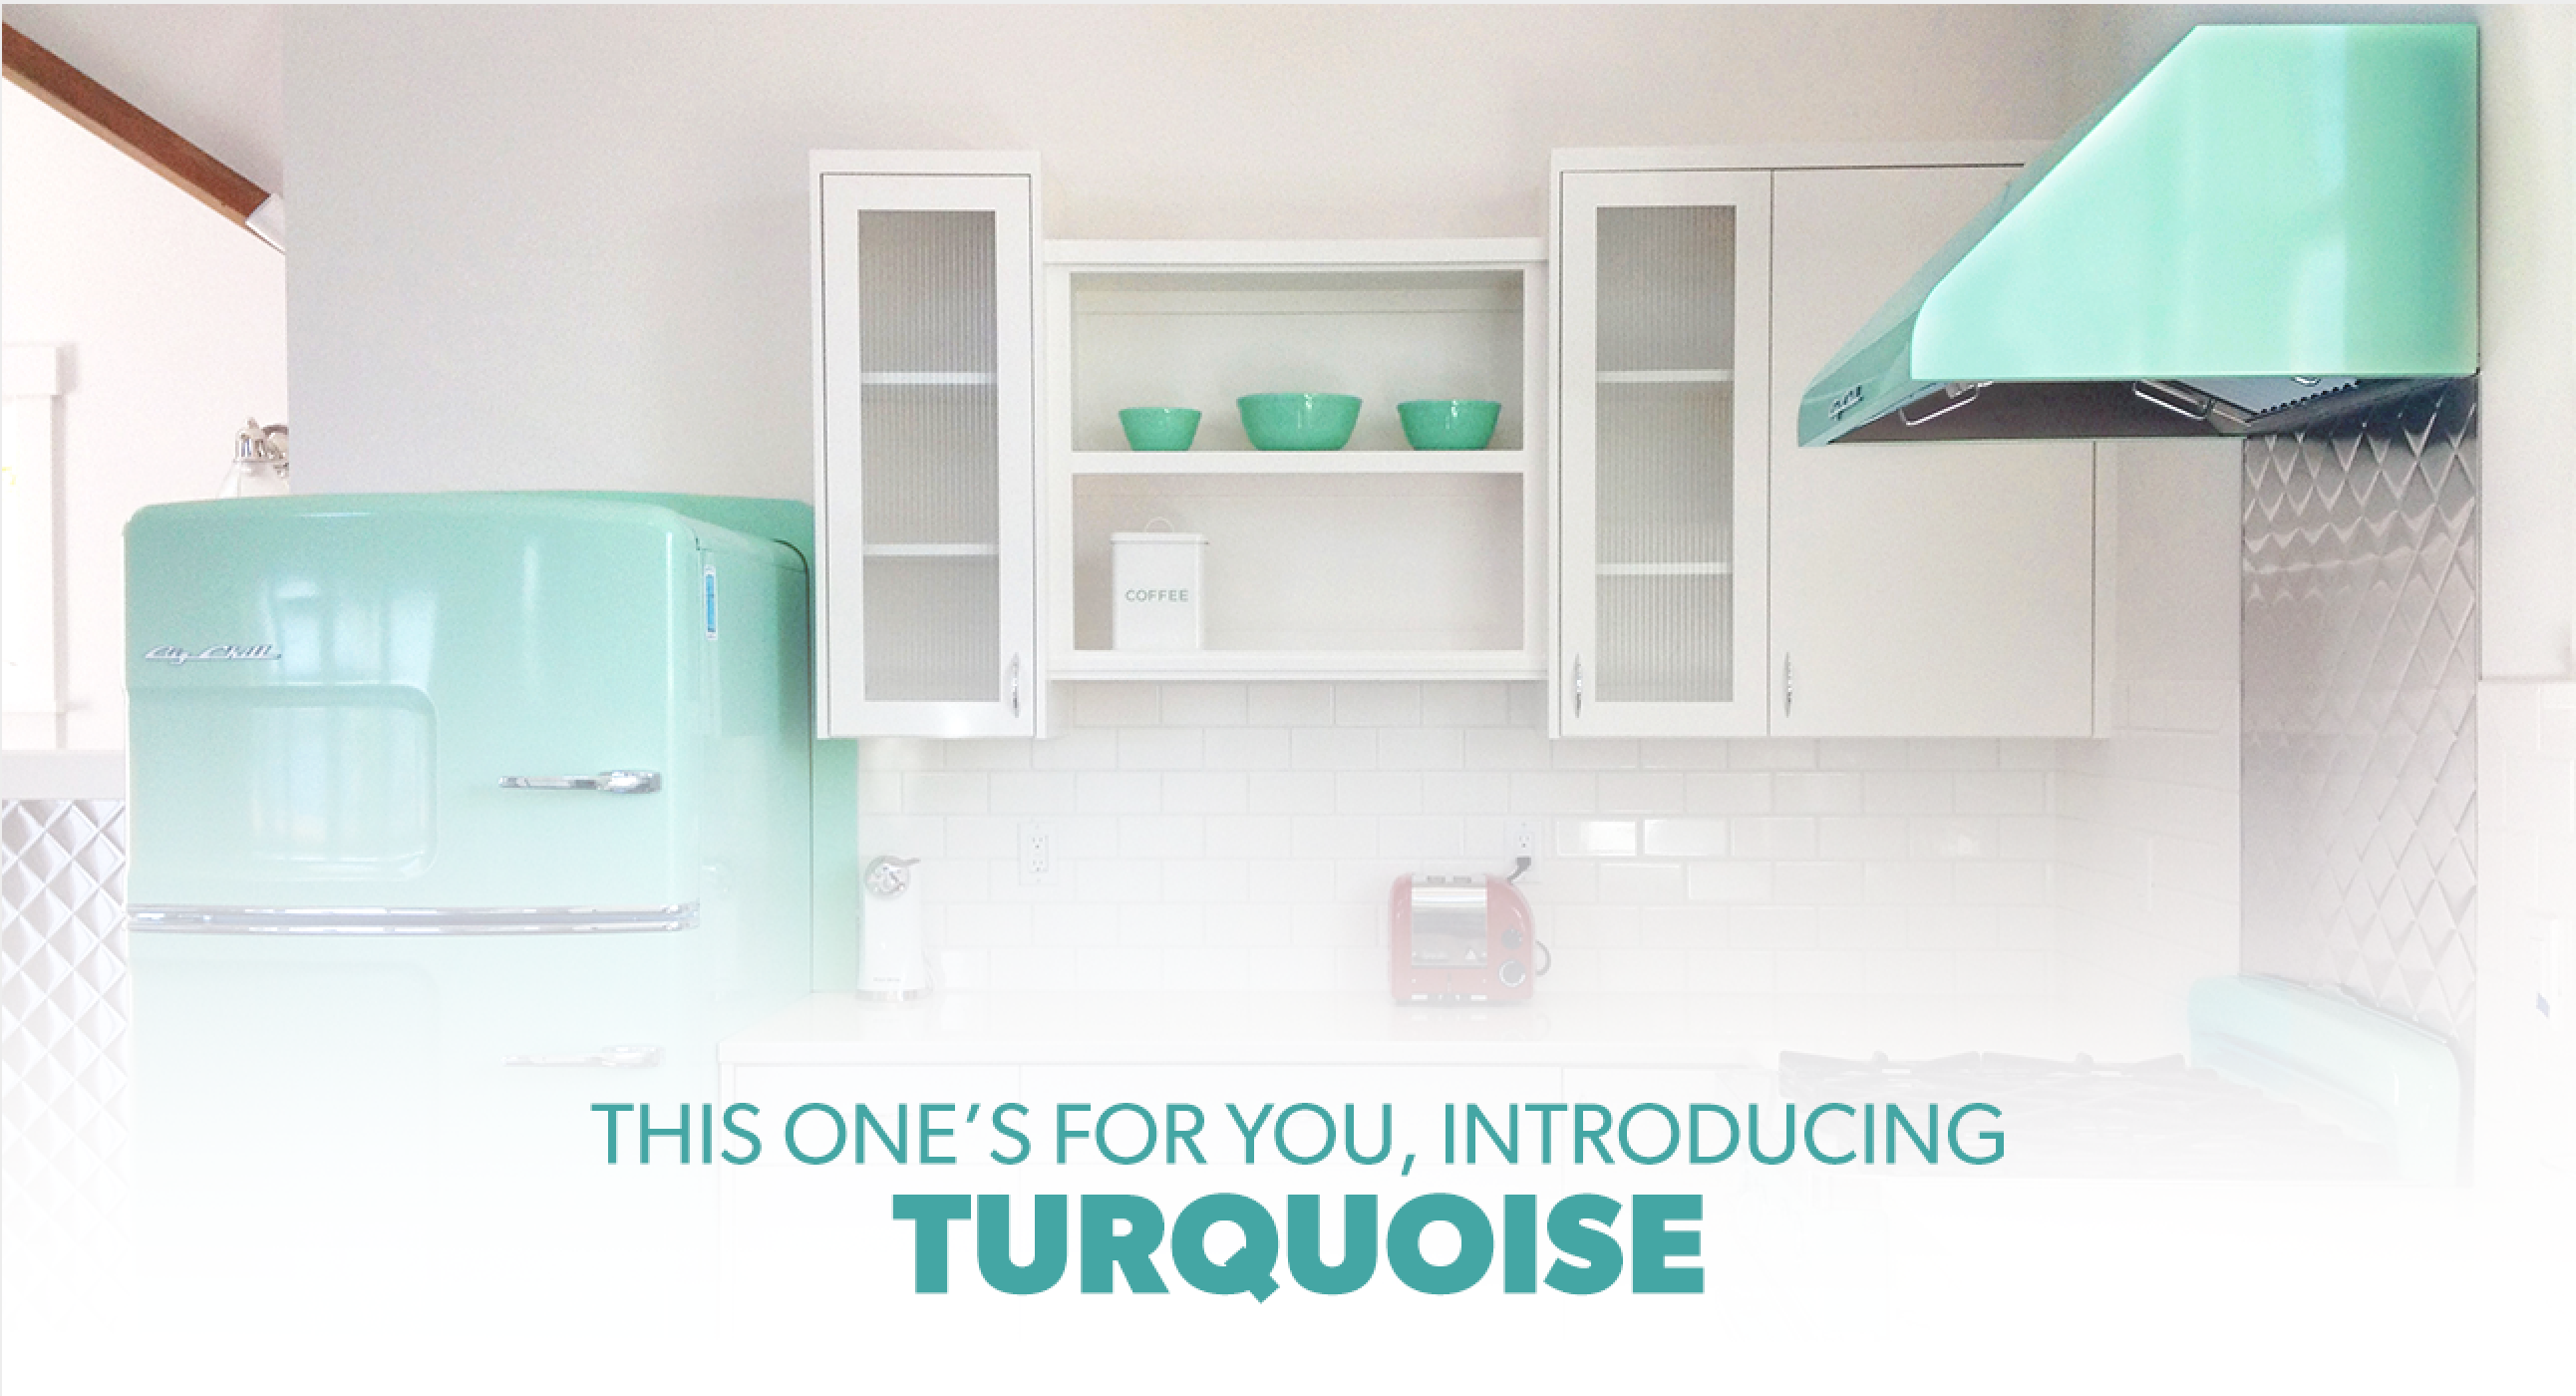 Introducing Turquoise